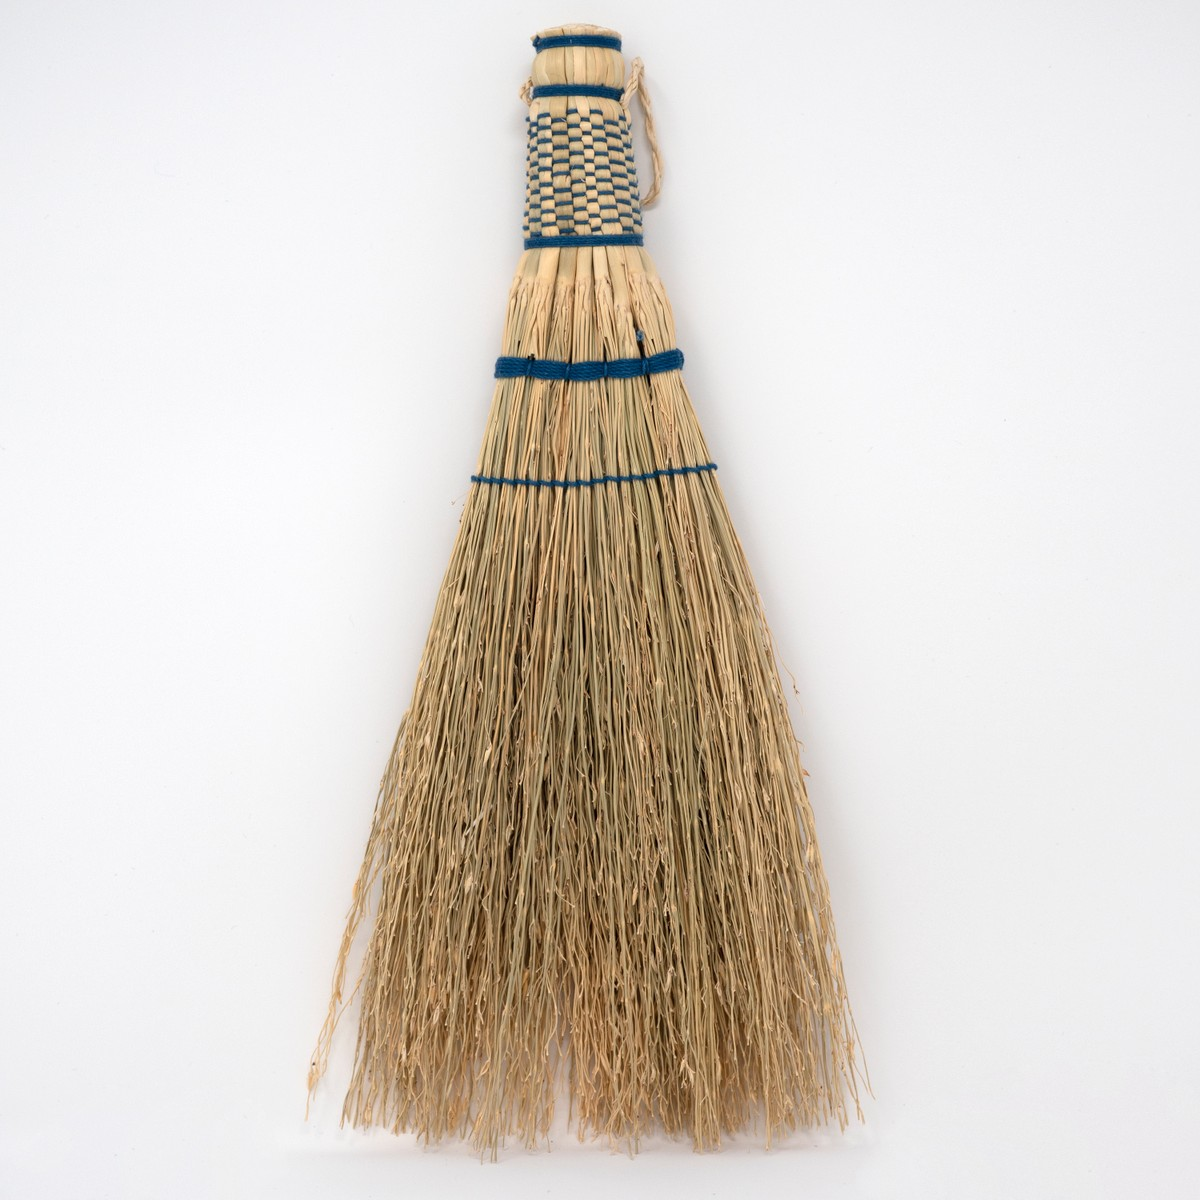 Photo of Sorghum Handbroom Medium Indigo